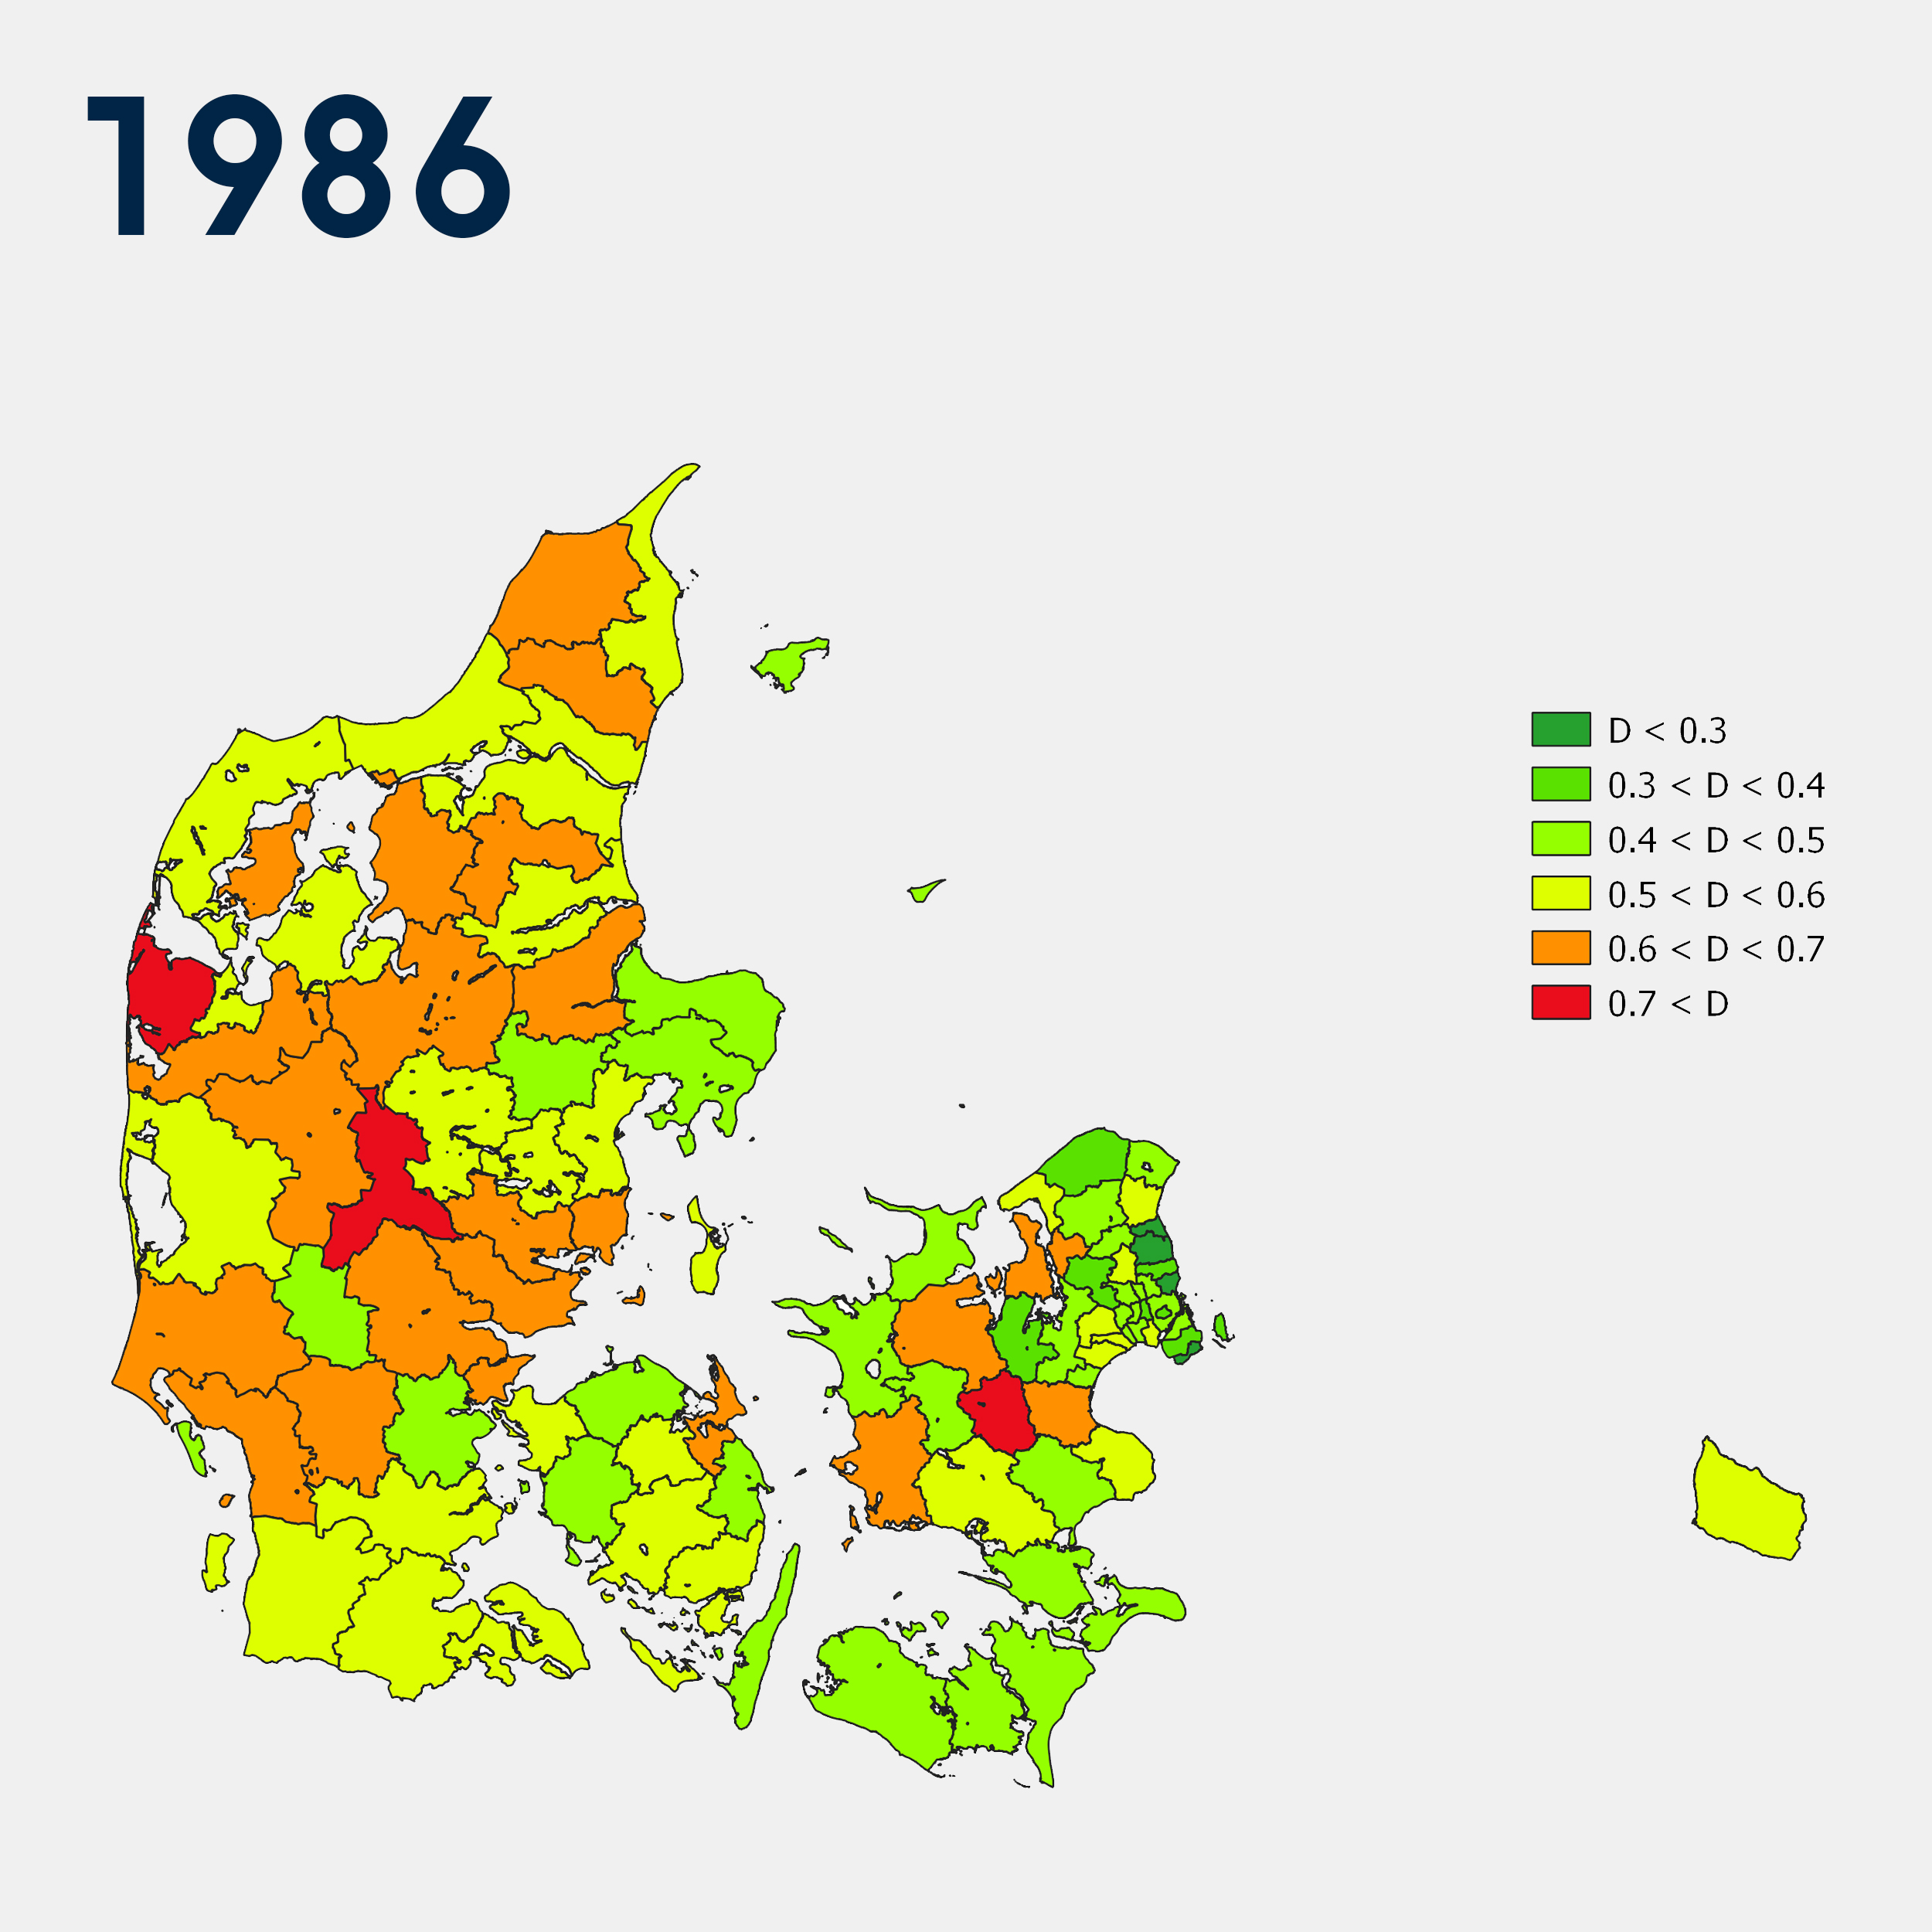 The maps show how segregated non-Western immigrants and descendants were living from other population groups in the Danish municipalities in 1986 and 2015.